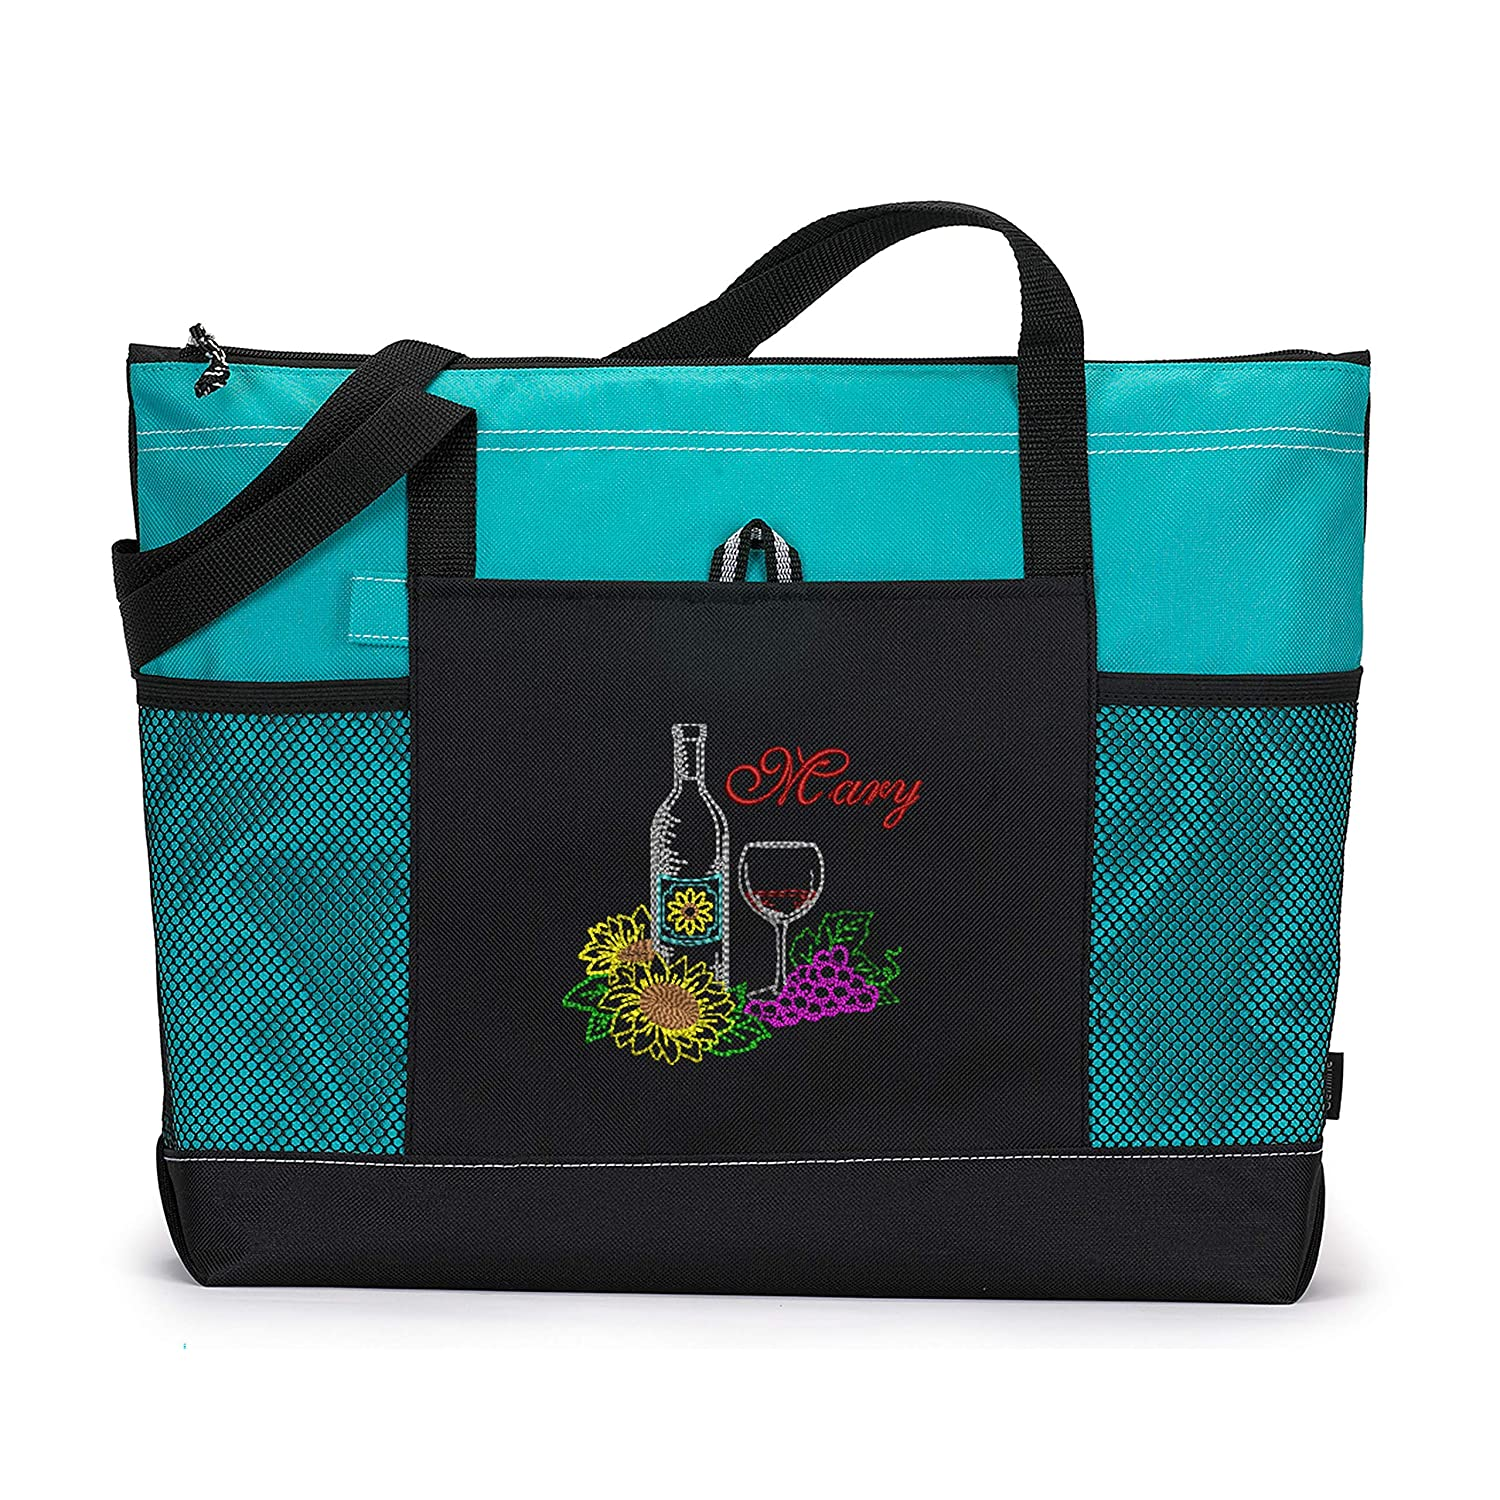 Classic Wine with Sunflowers Personalized Free Ranking TOP13 Shipping New Tote Embroidered w Bag